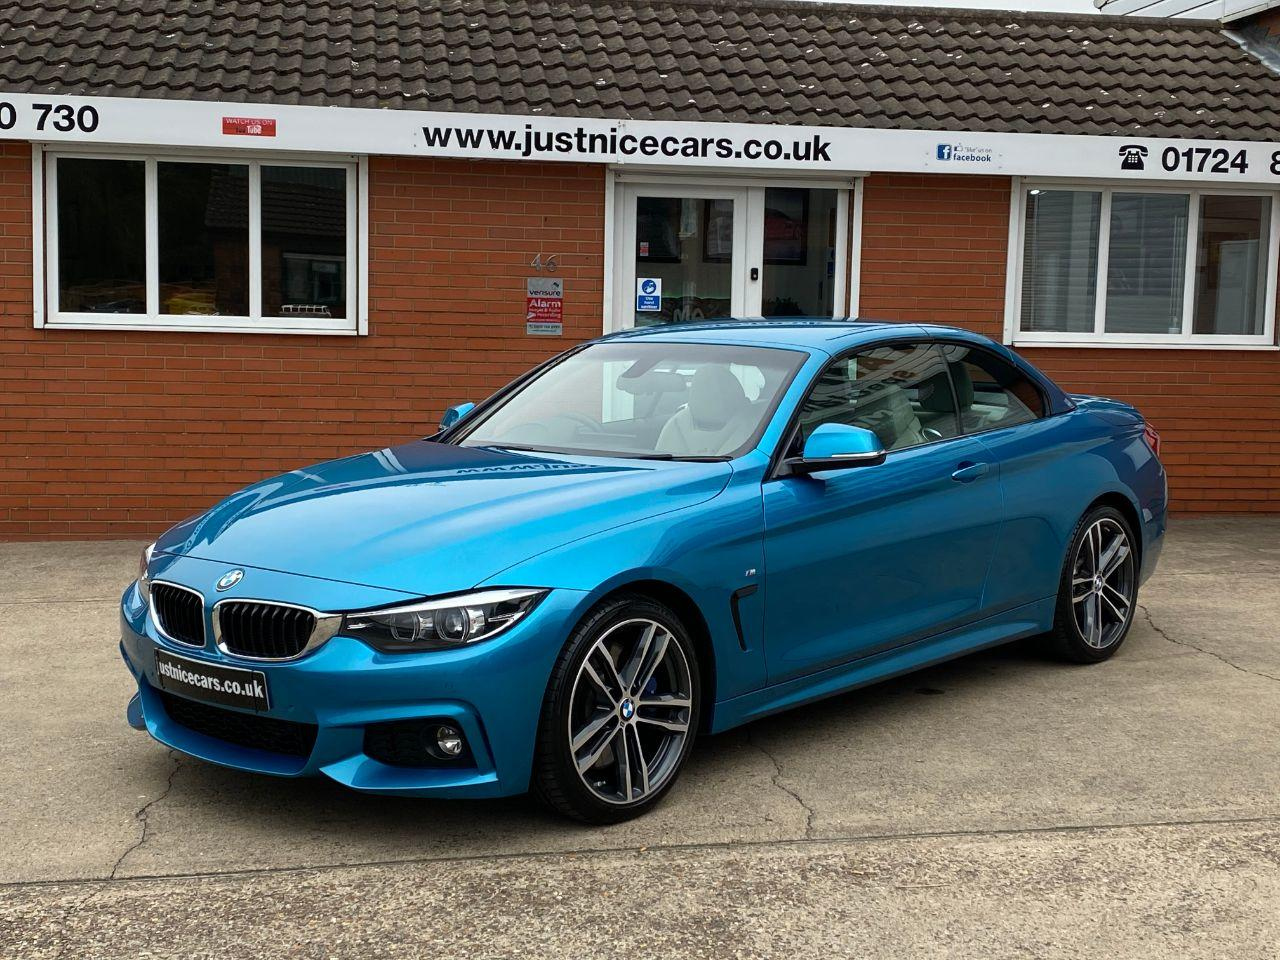 BMW 4 Series 3.0 430d M Sport 2dr Auto Professional Media Convertible Diesel Snapper Rocks Blue Metallic